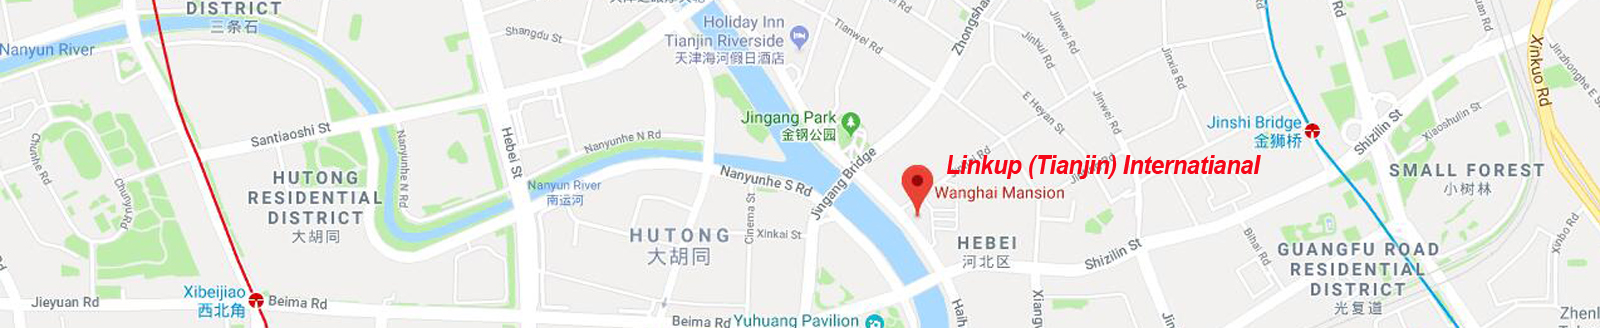 linkup (tianjin) international address 1600 328